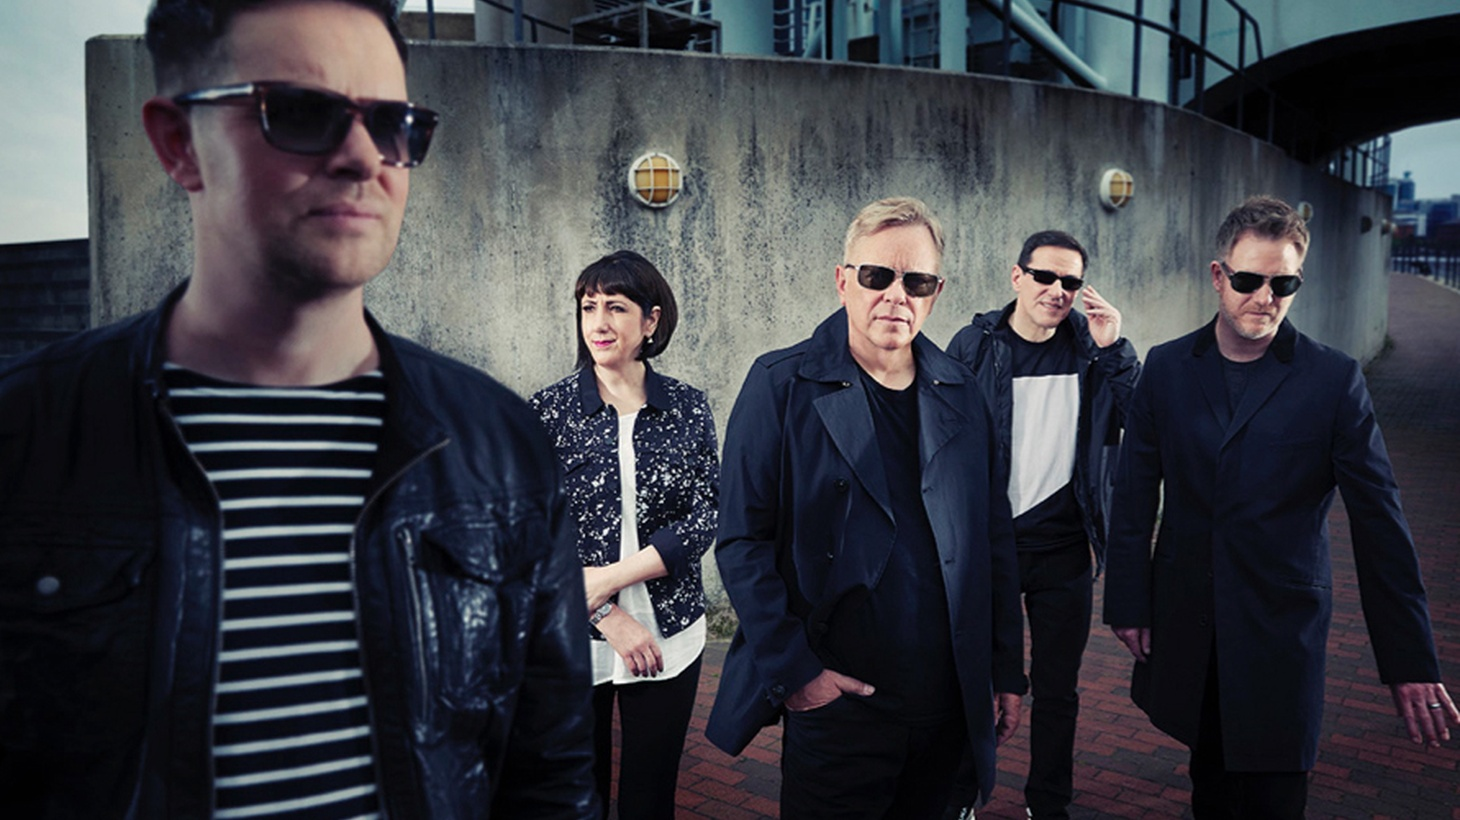 After 10 years, New Order are set to release a new album in early fall.